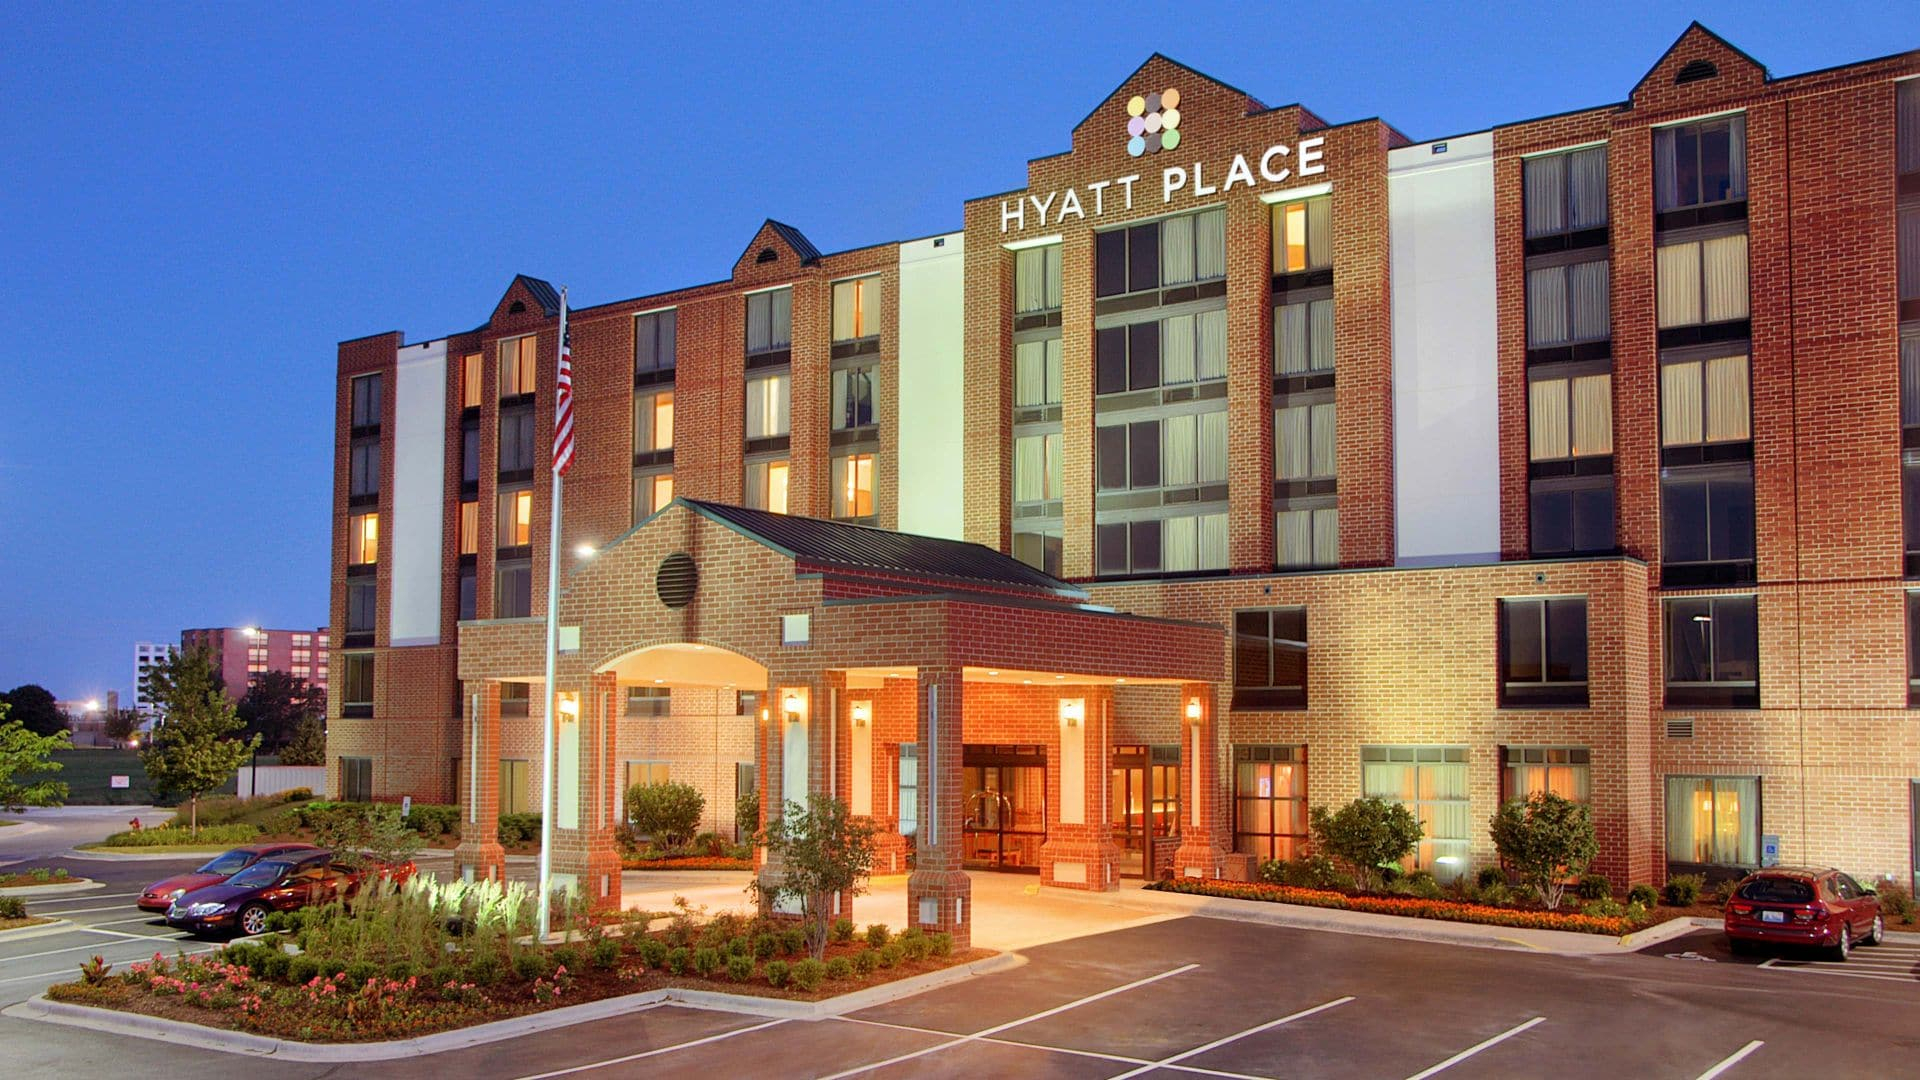 Hotels Near Fort Worth, Tx And Dfw Airport | Hyatt Place Hurst - Map Of Hotels Near Fort Worth Texas Convention Center